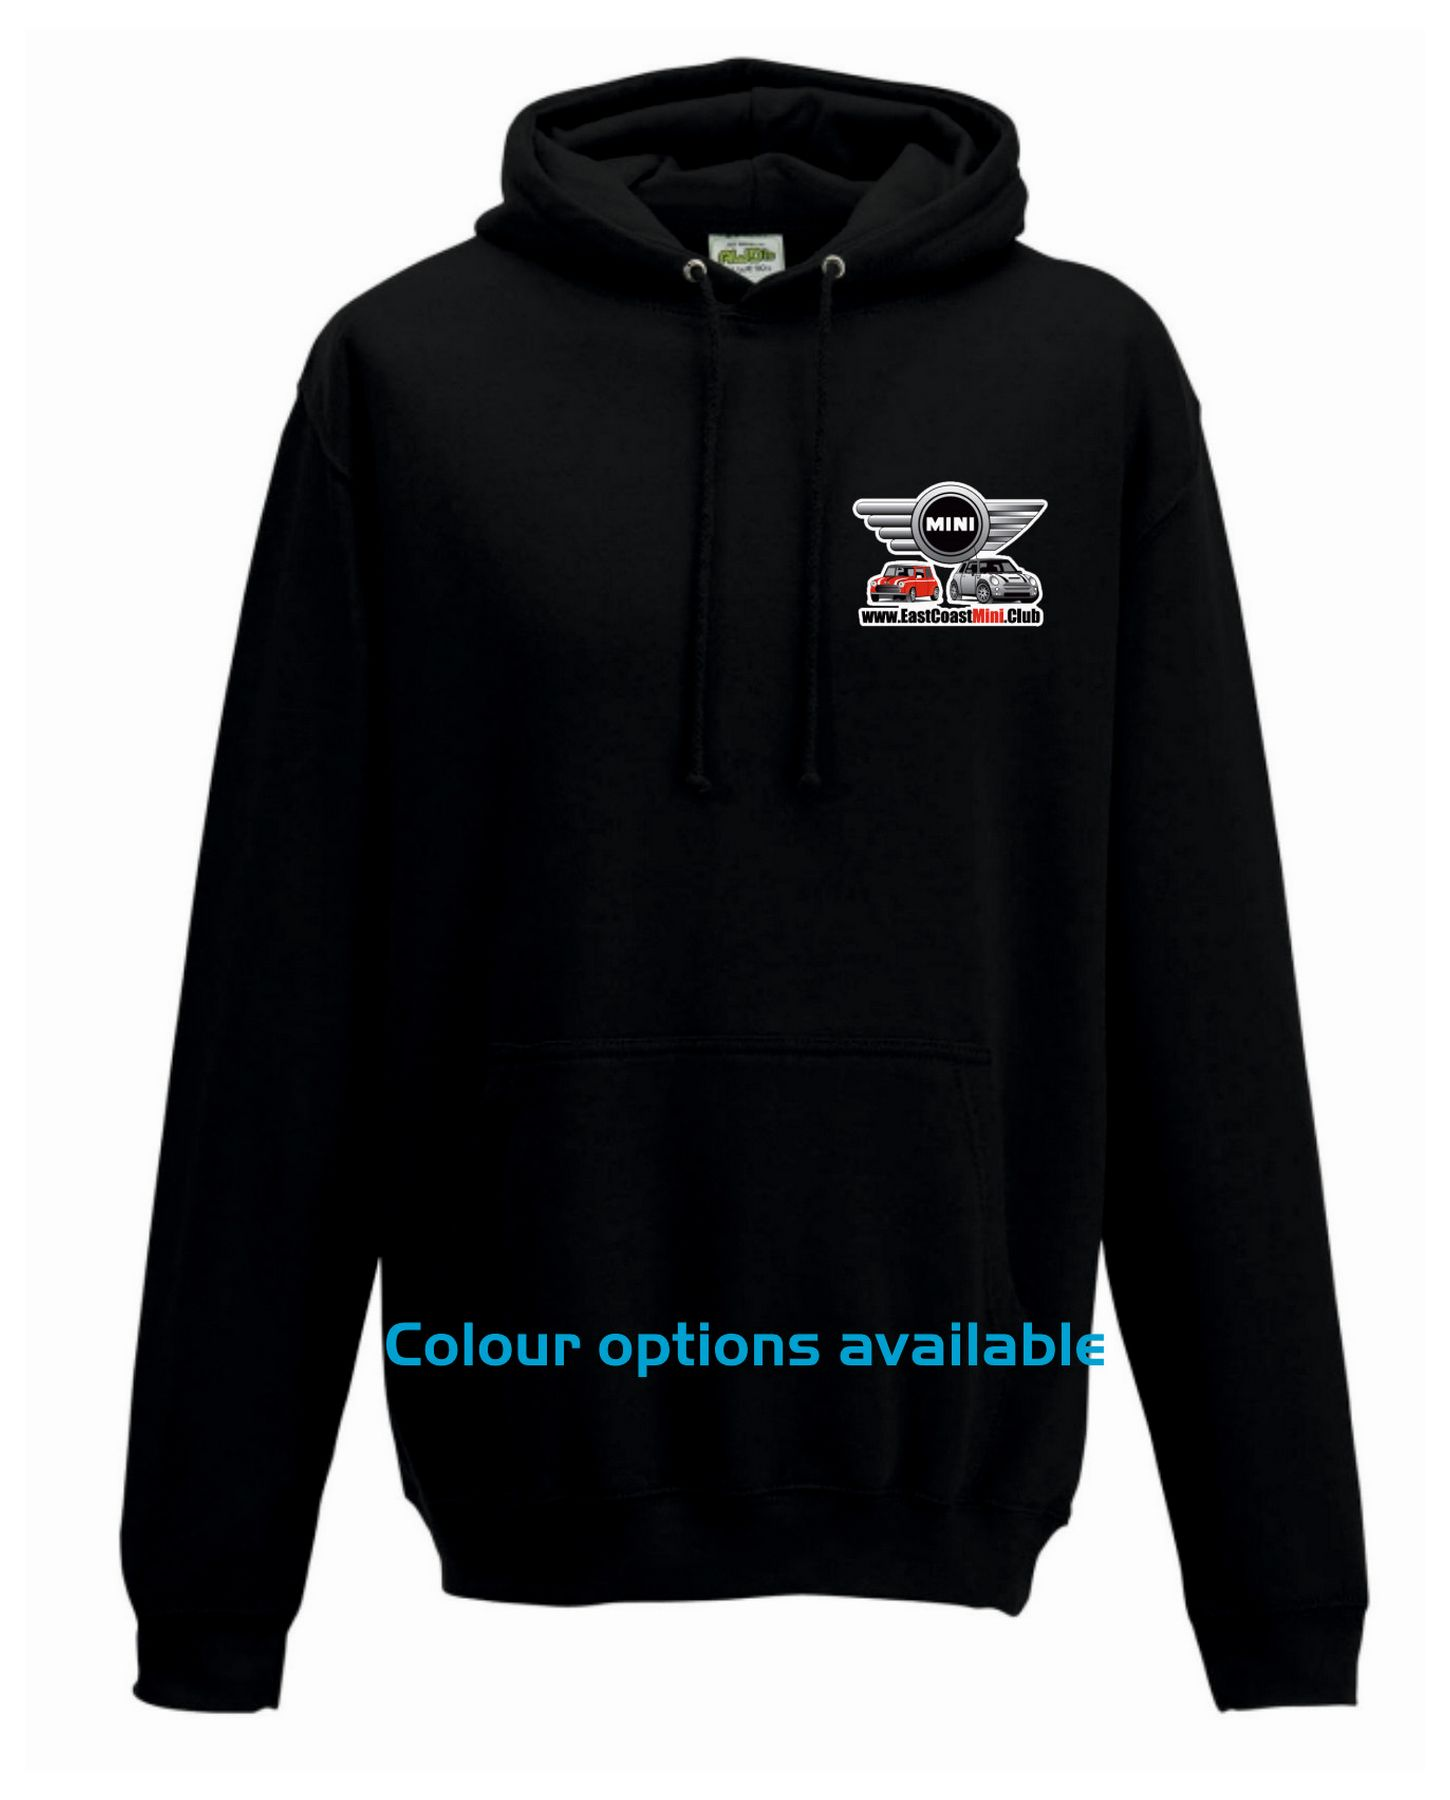 East Coast Mini Club – Hoodie (Unisex)